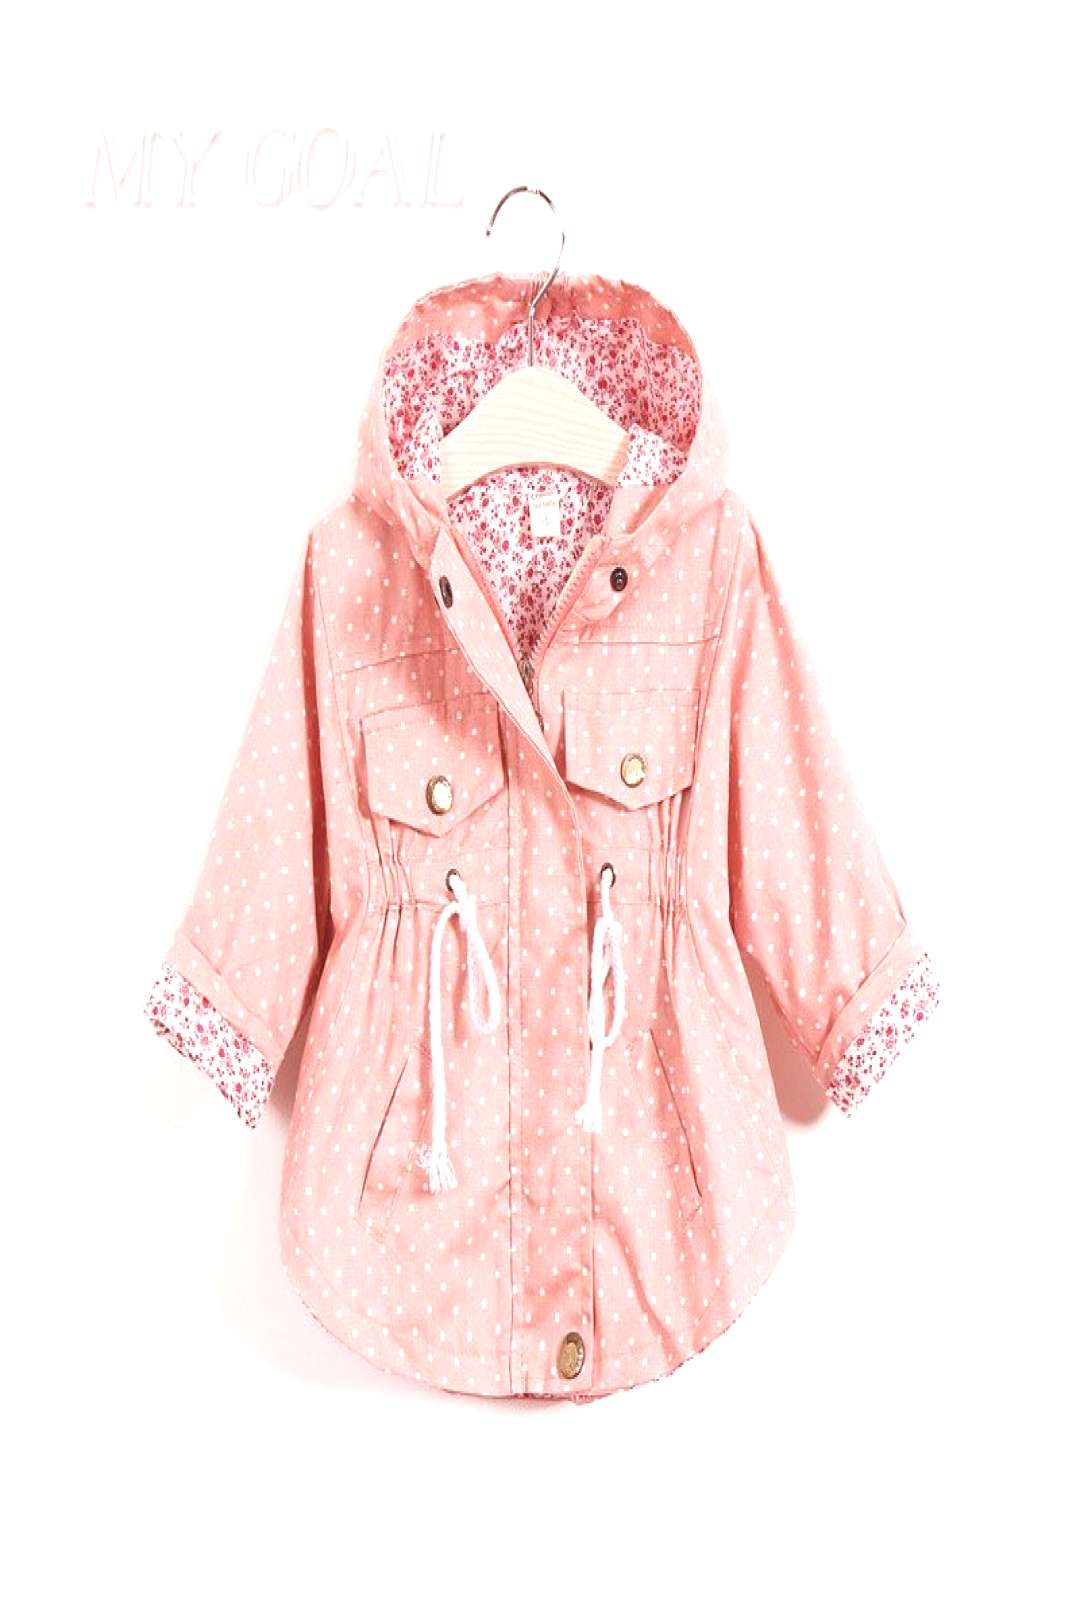 New Spring Baby girls Clothes Baby Outerwear Infant Cartoon Coat wave printed batwing coat - Buy it